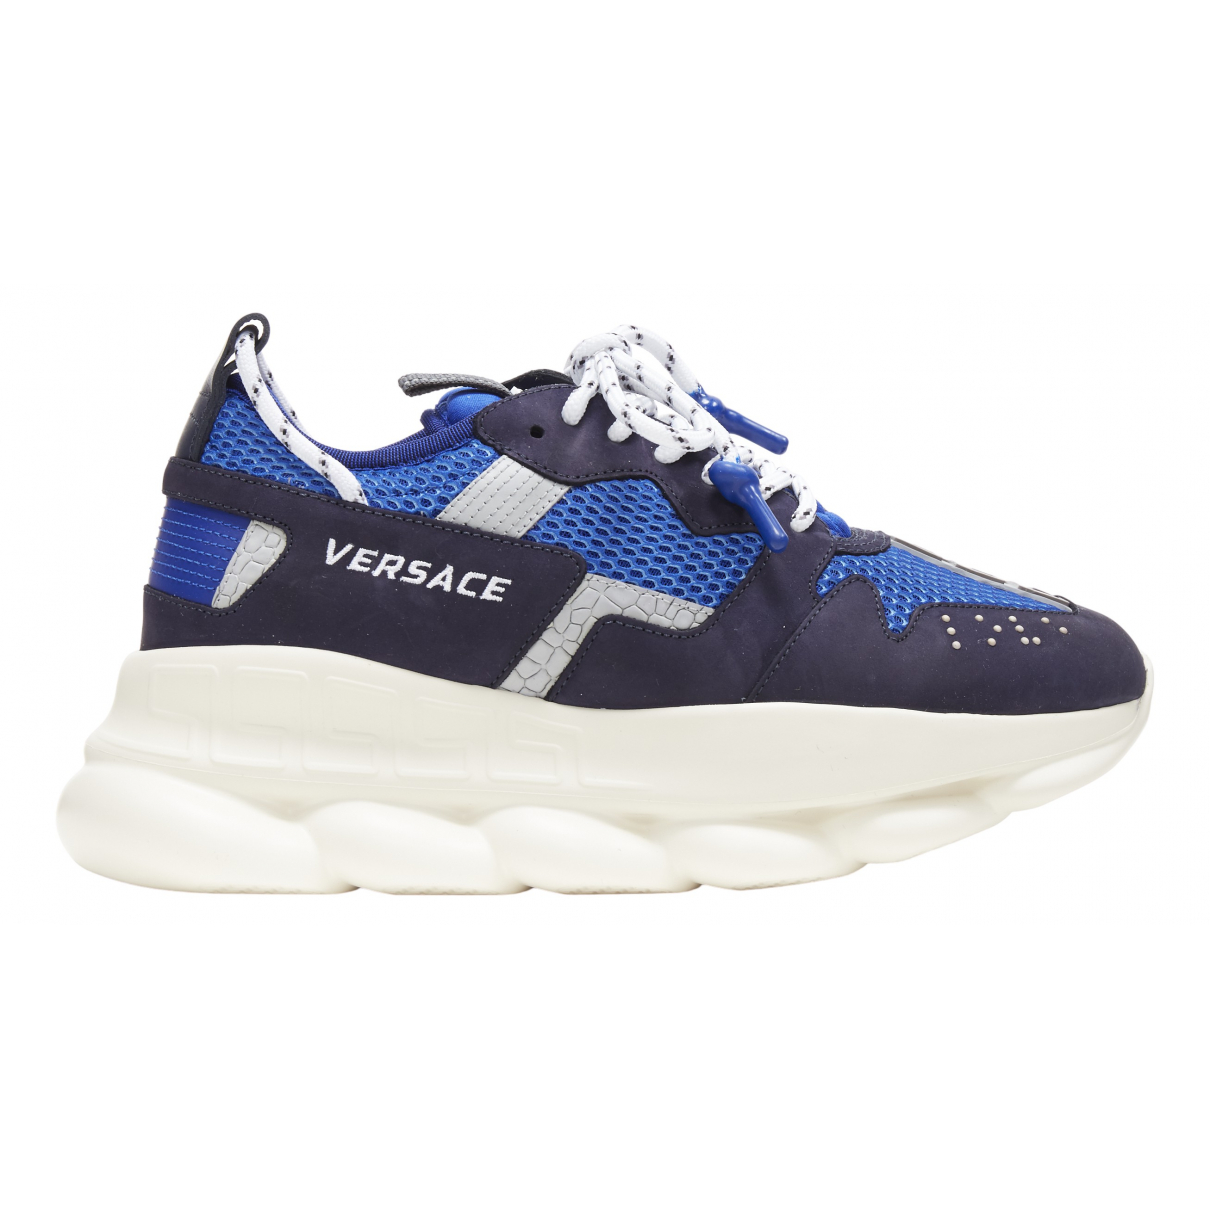 Versace Chain Reaction Blue Leather Trainers for Men 44 EU